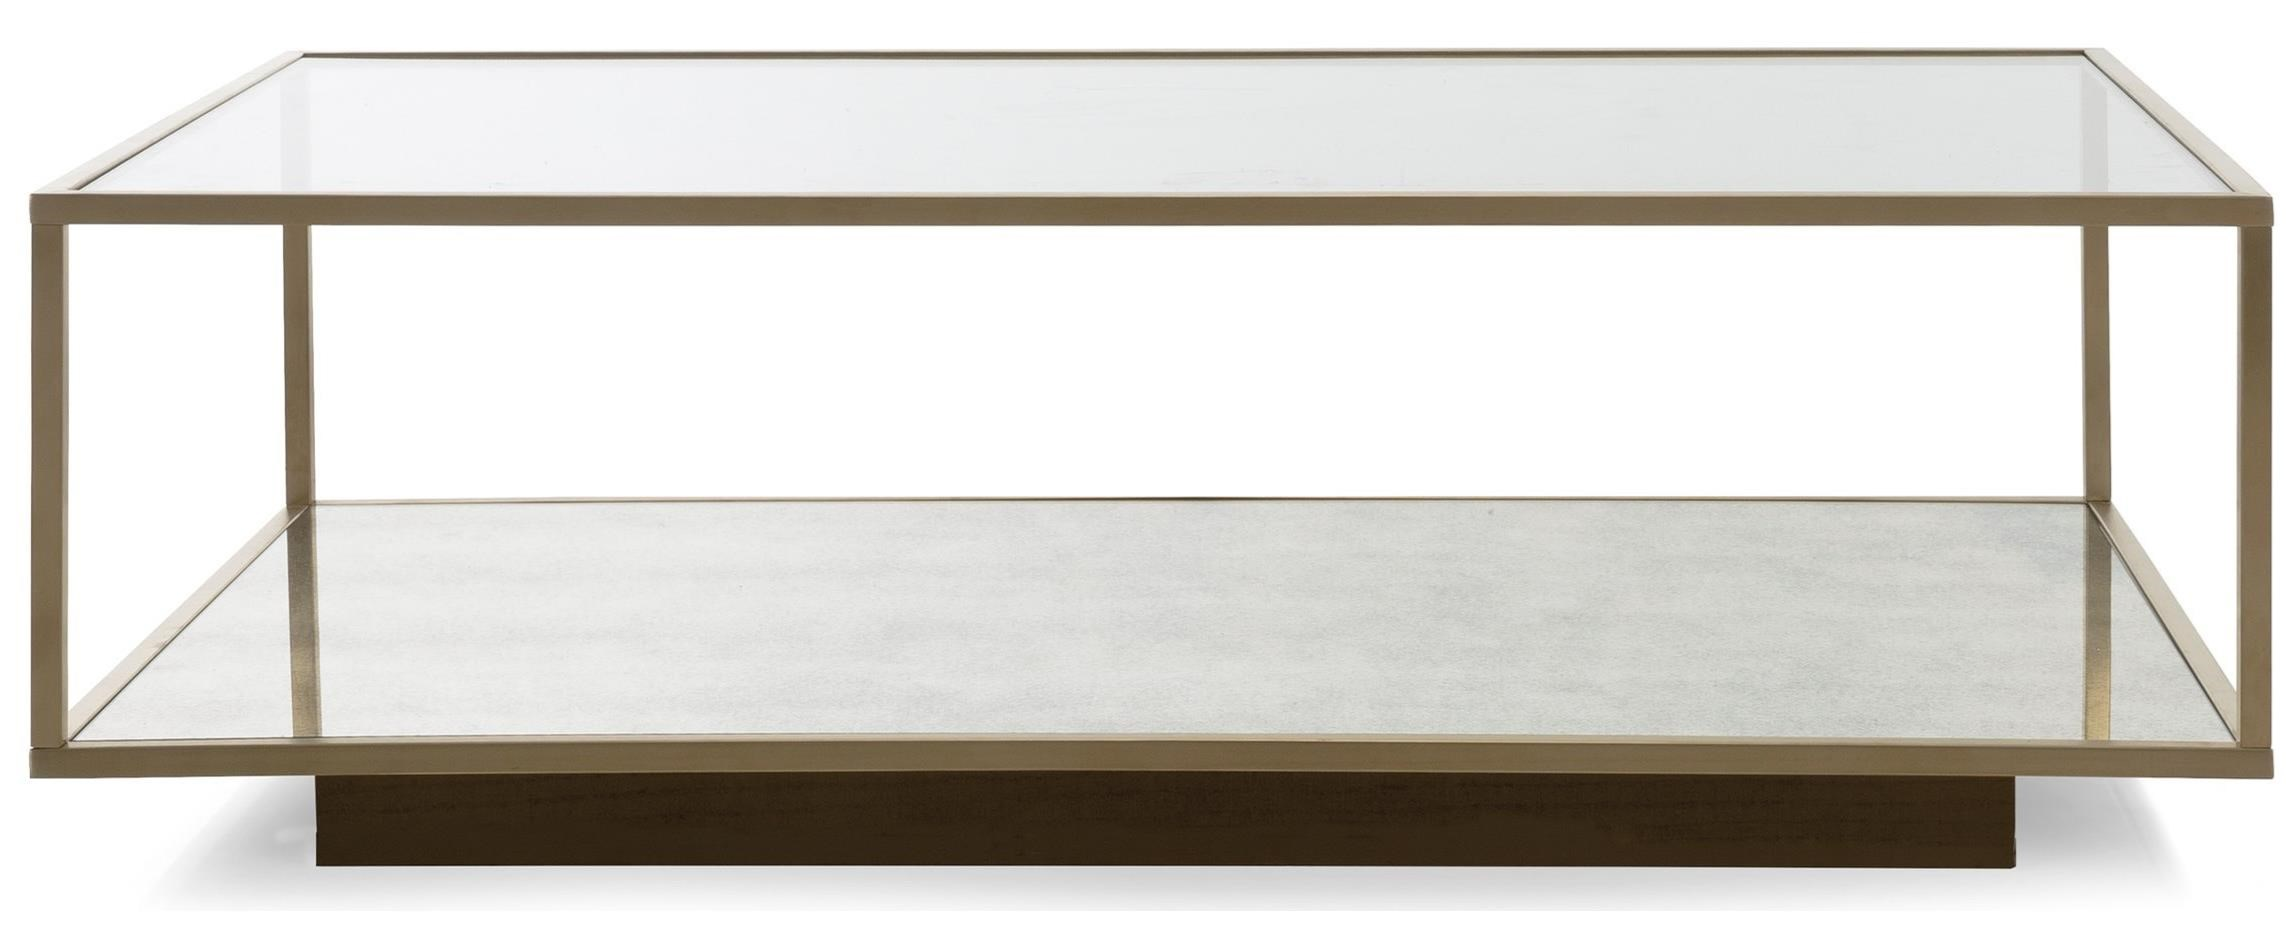 Milan Coffee Table by Decor-Rest at Stoney Creek Furniture